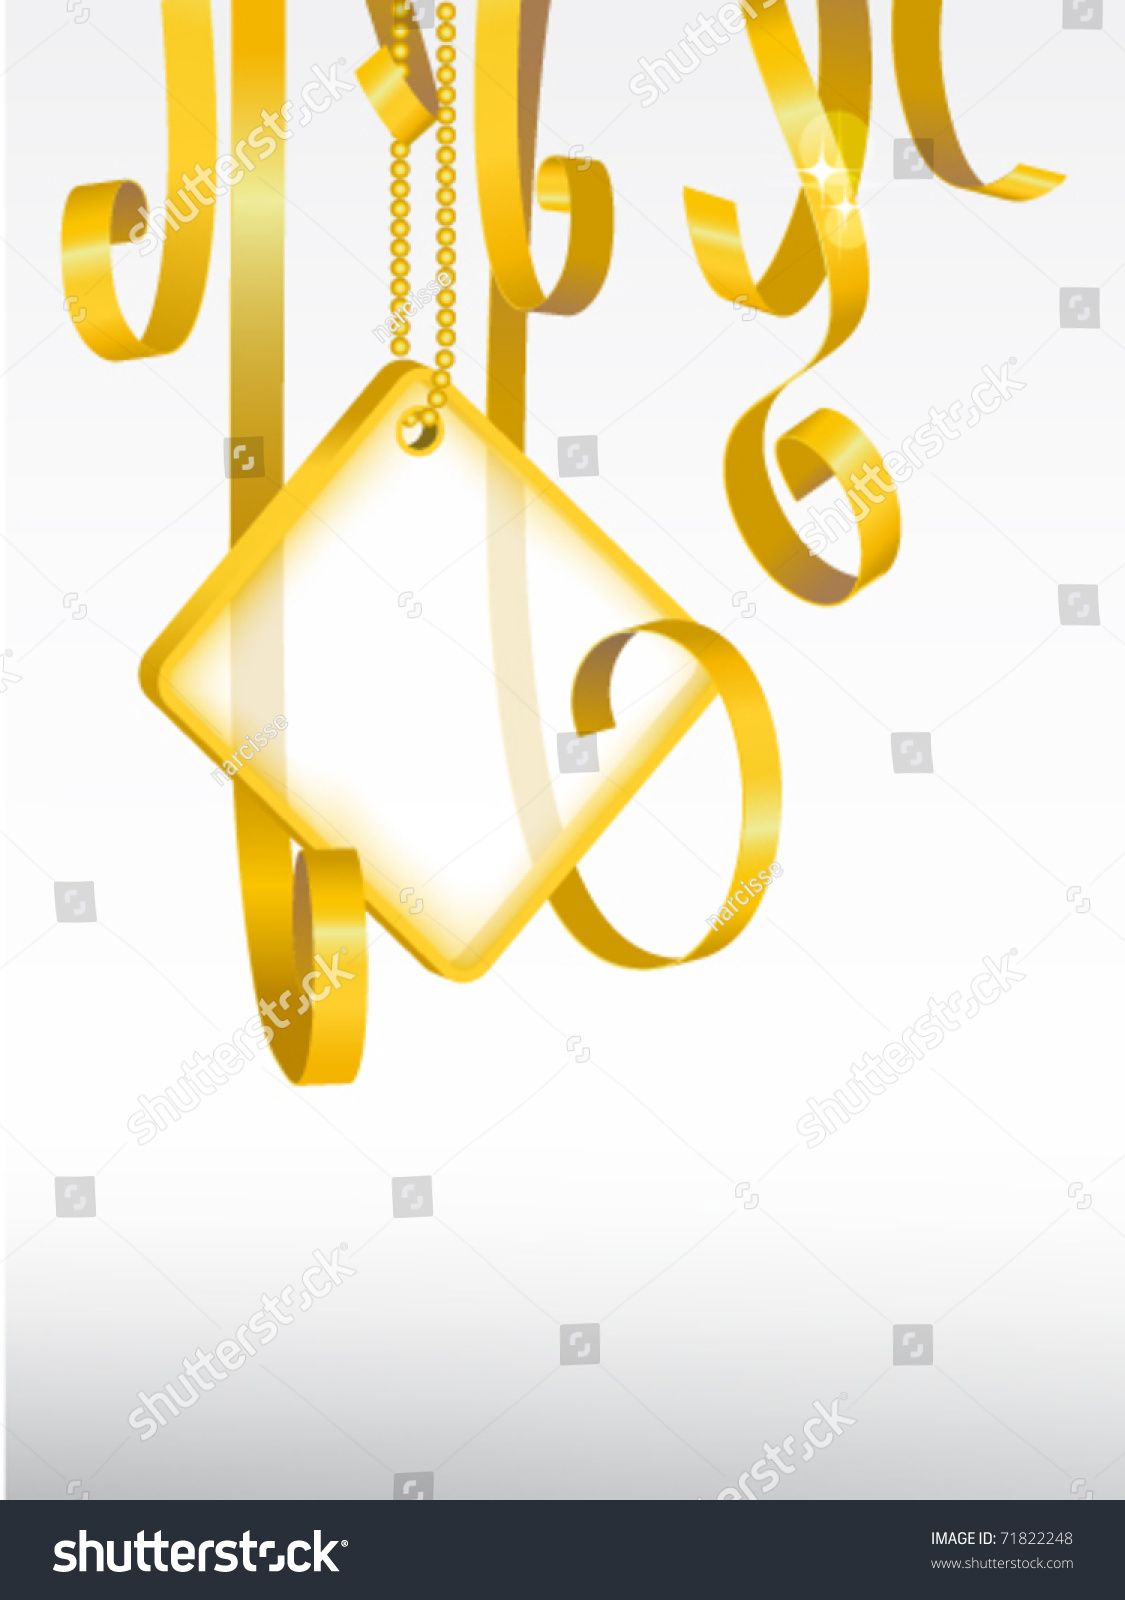 Greeting card card note rolled golden stock vector 71822248 greeting card card note with rolled up golden swirly ribbon on white background blank kristyandbryce Choice Image